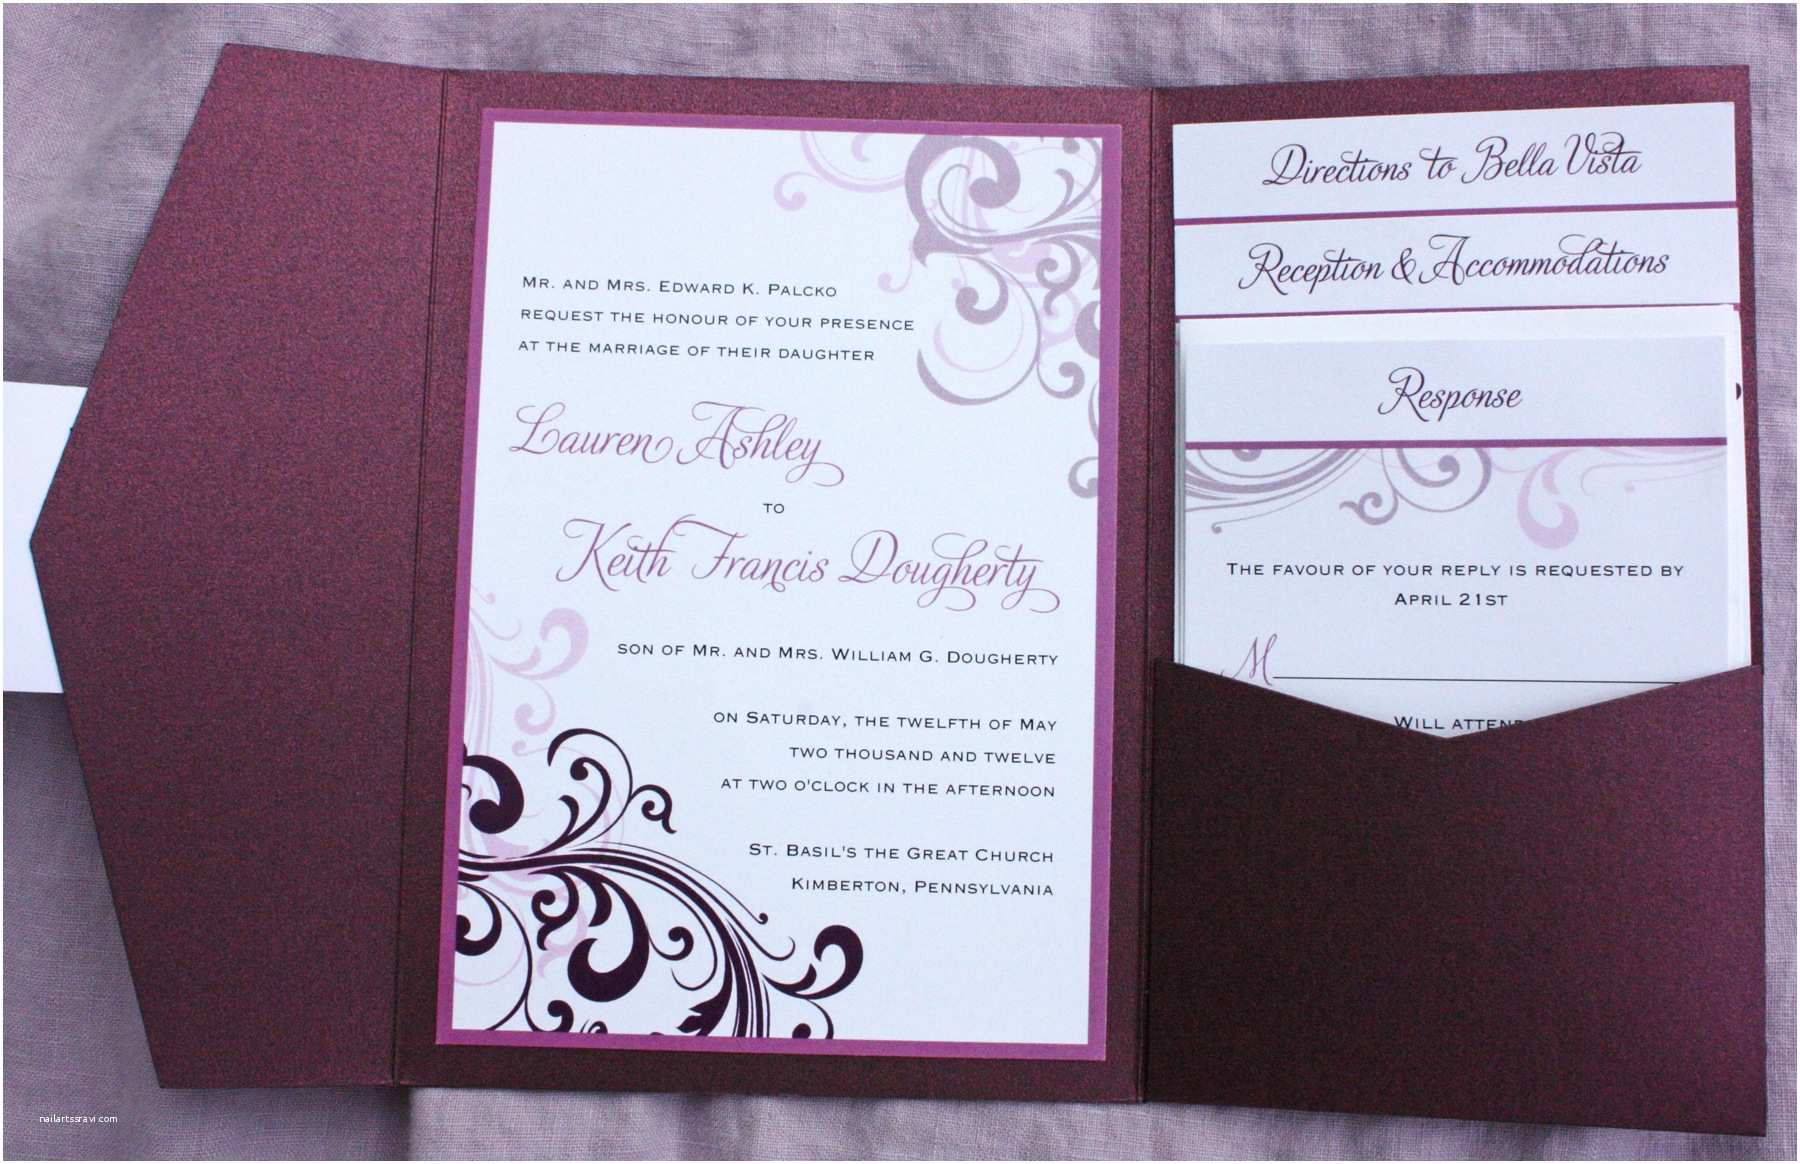 Impressive Wedding Invitations Impressive Wedding Invitation Folders